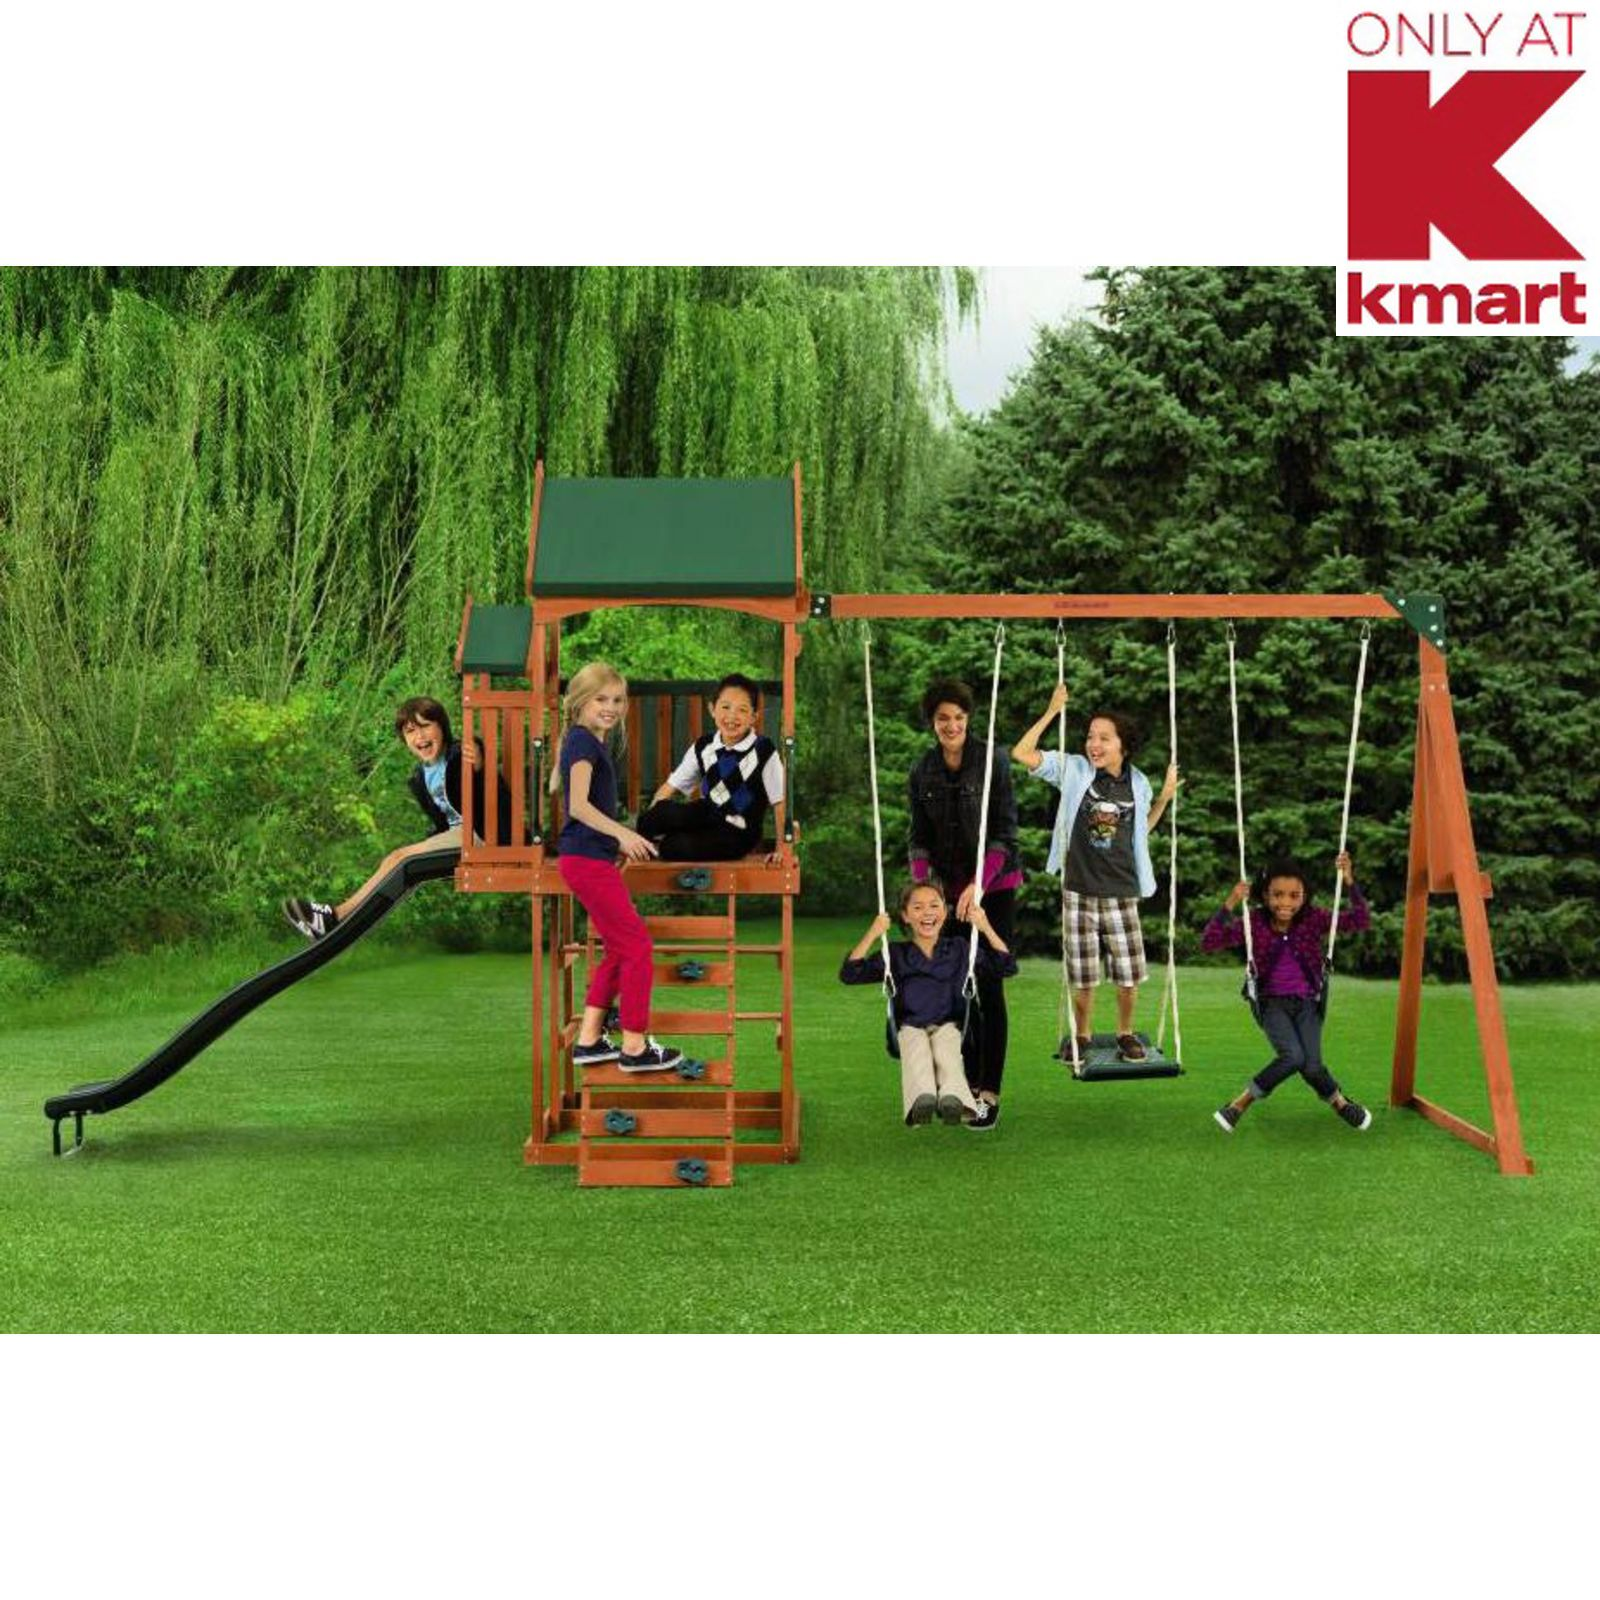 Timber Play Ii Swing Set Backyard Playtime Fun For Kids From Kmart 303 00